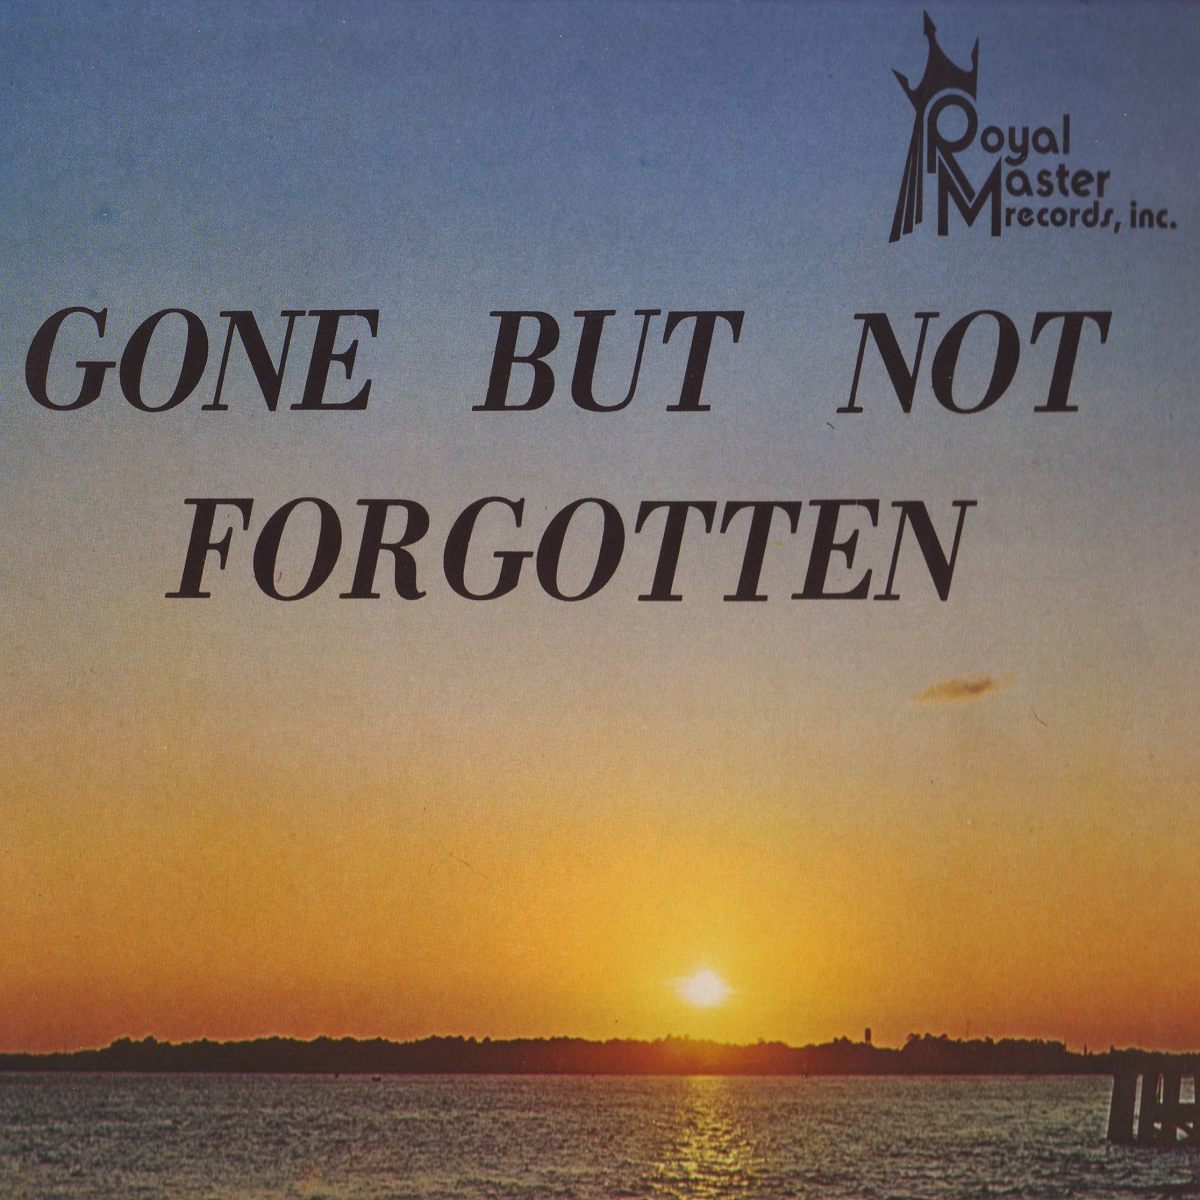 Gone But Not Forgotten Quotes Inspiration Wfmu  365 Days Project 2007